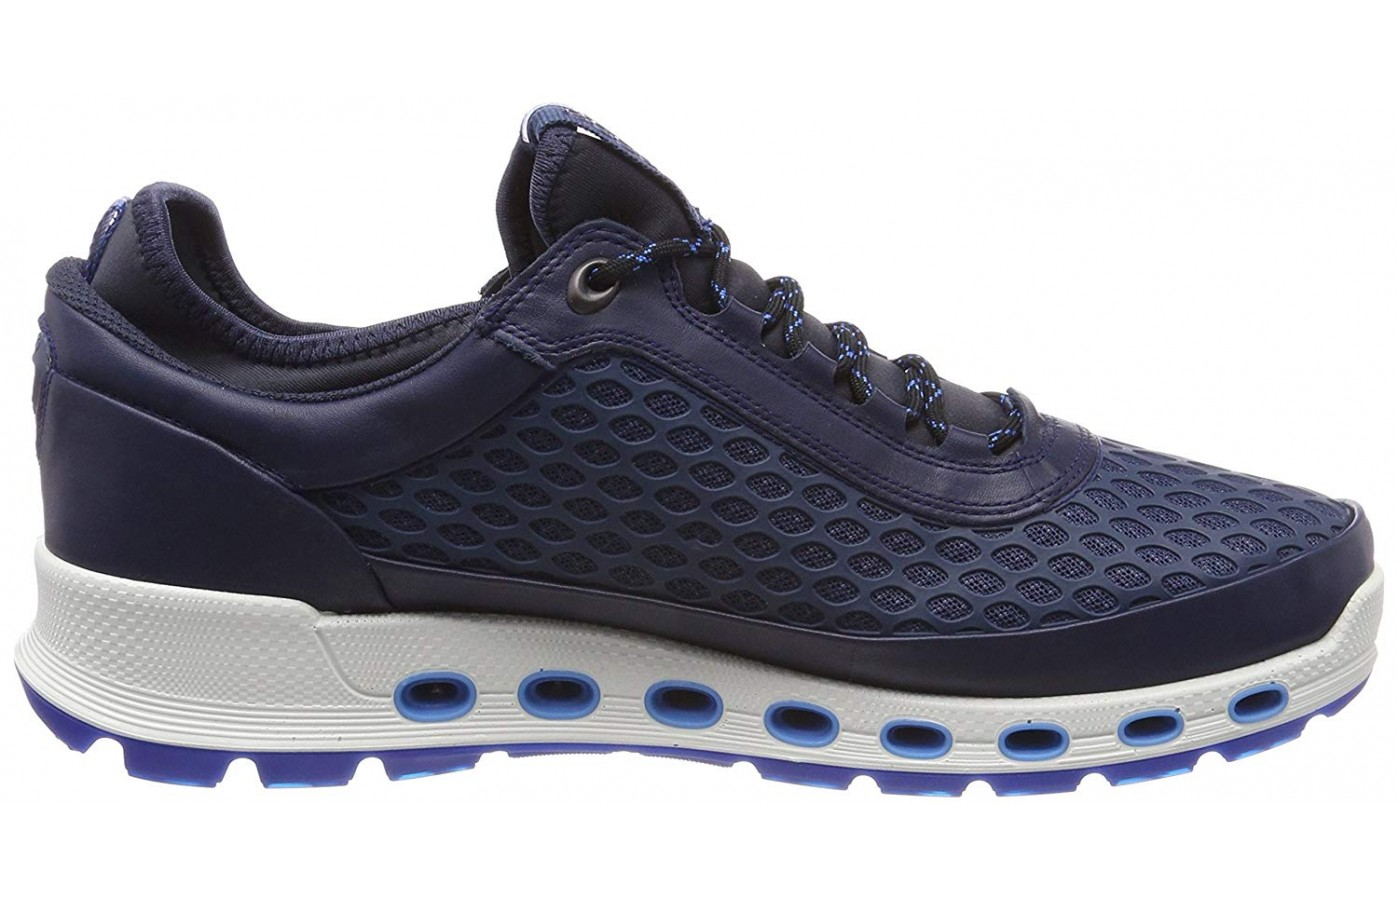 ECCO Cool 2.0 Textile Side